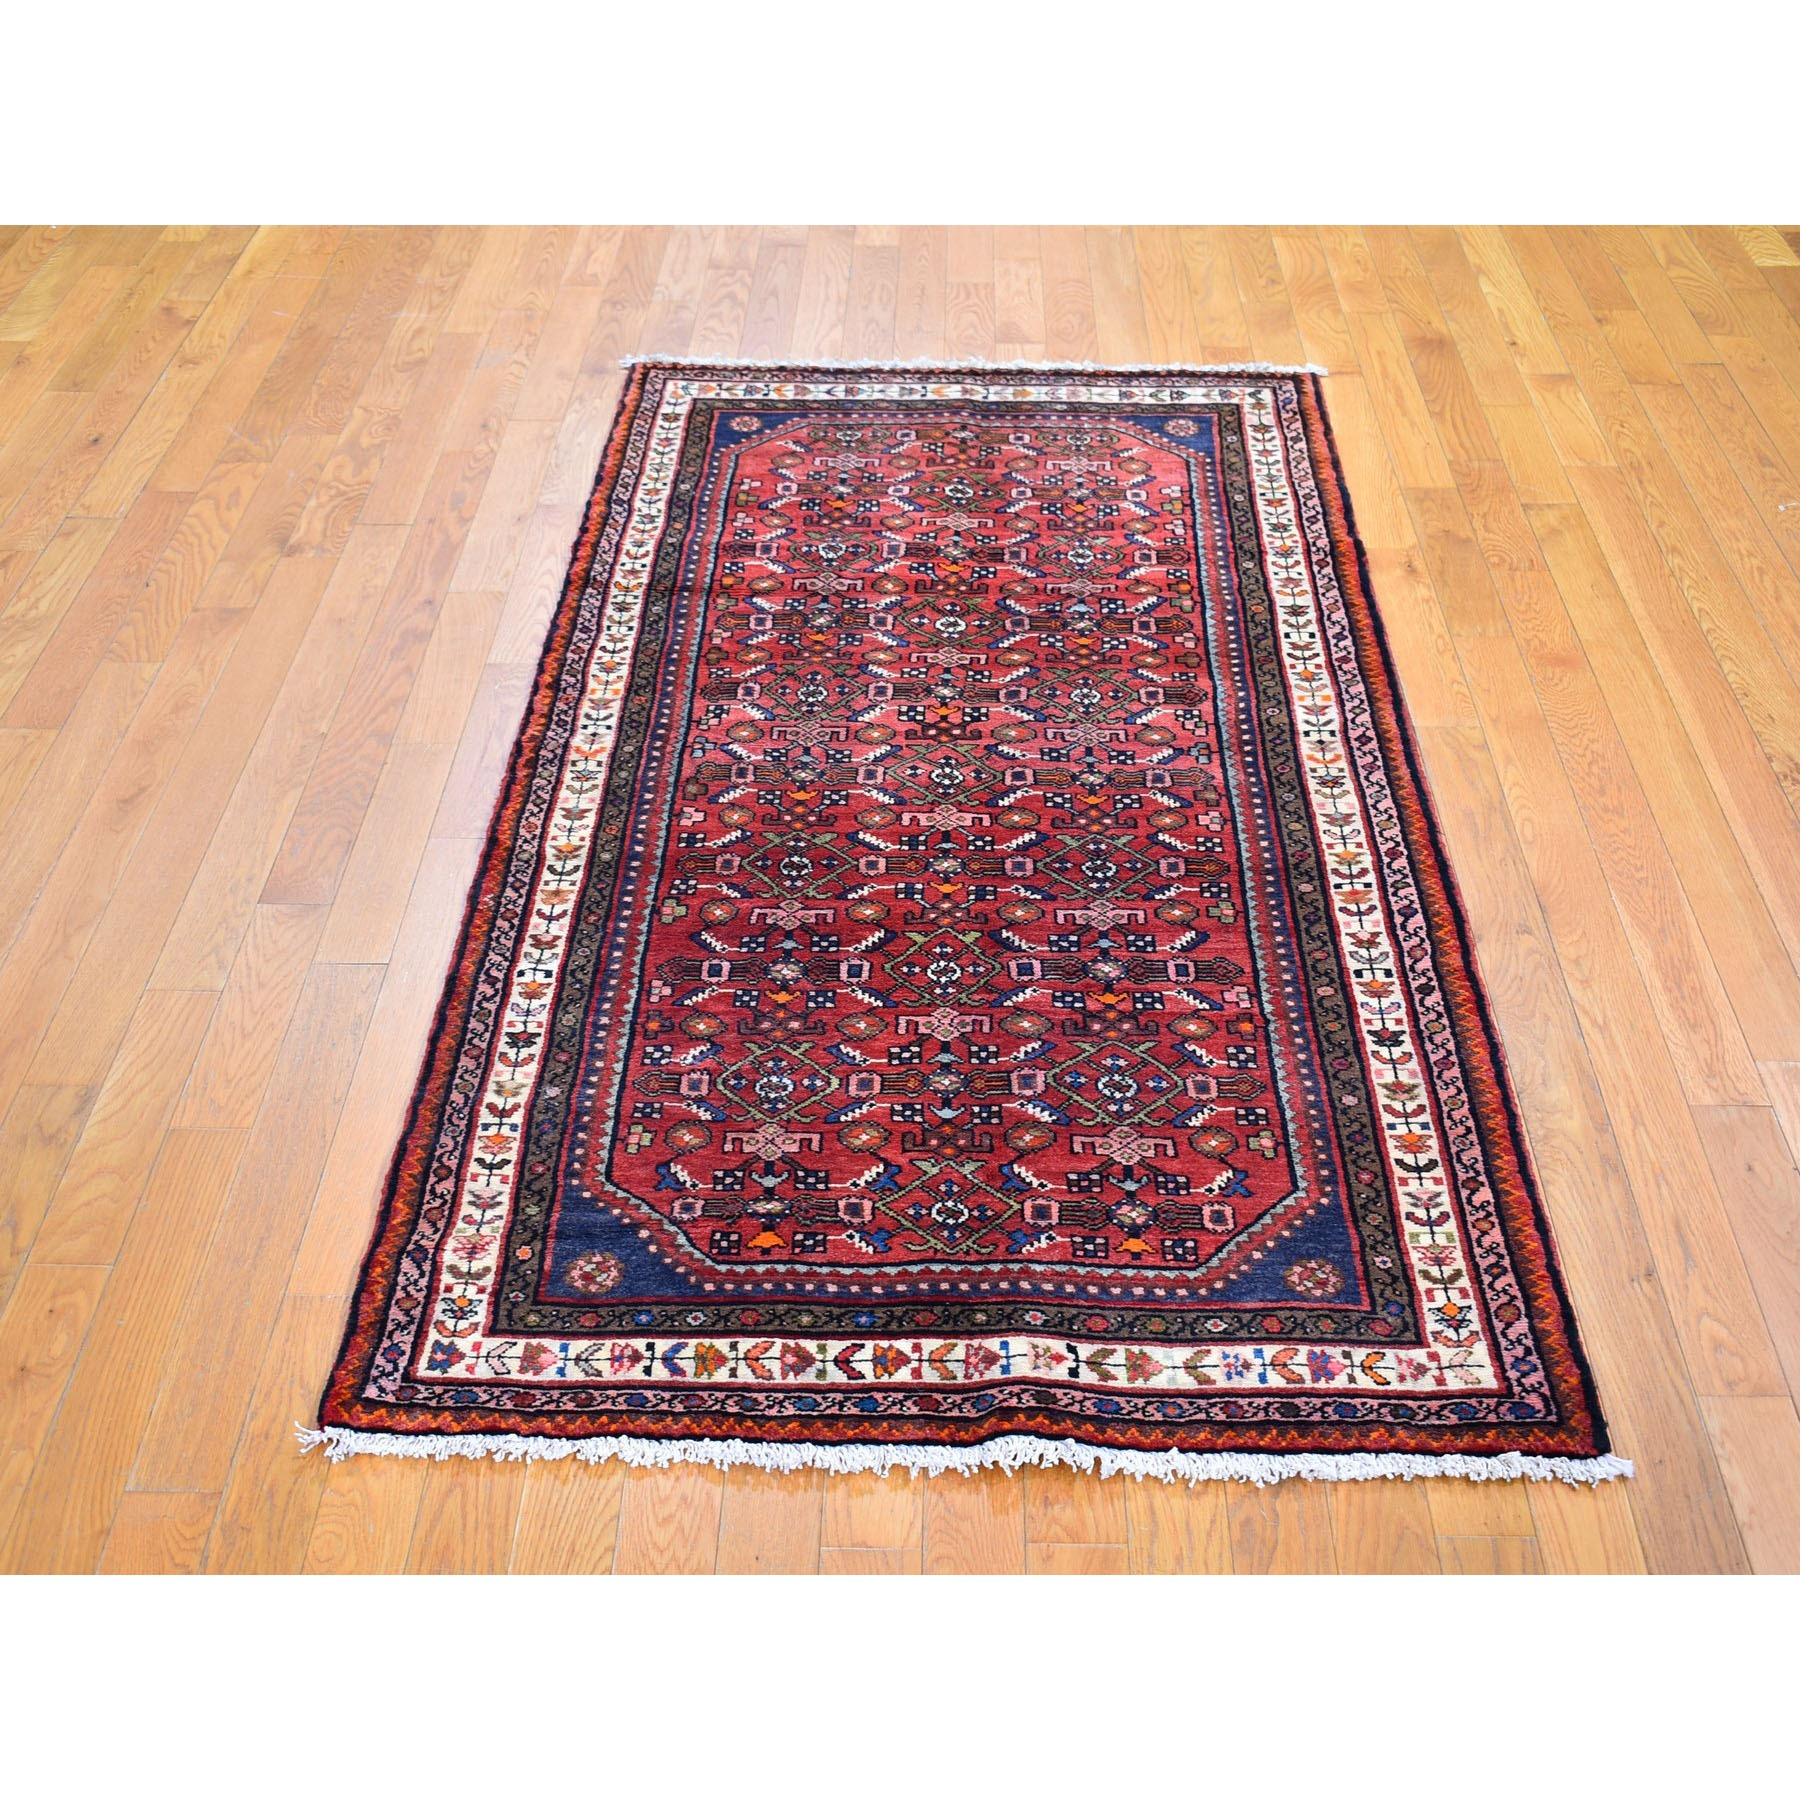 "3'7""x7'1"" Red Fish All Over Herat Design Persian Hamadan Hand Knotted Natural Wool Oriental Rug"